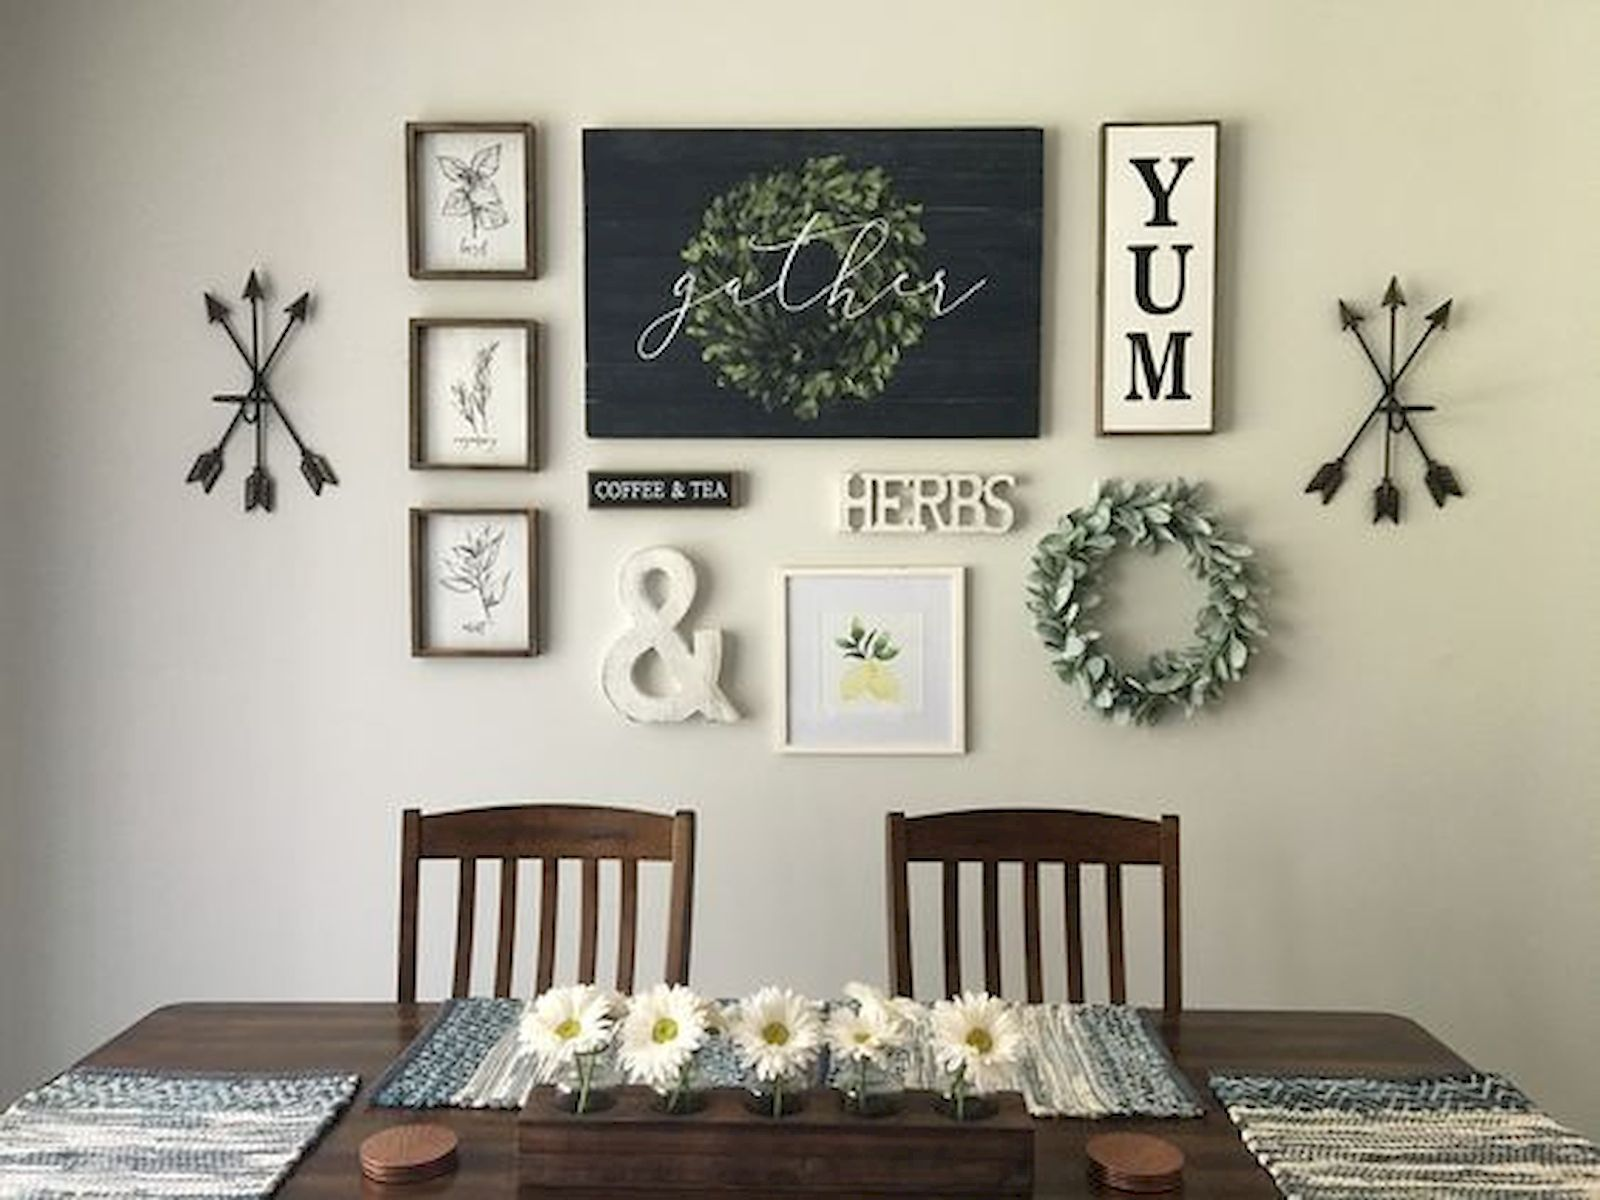 51 Farmhouse Wall Decor Ideas For Dinning Room Dinning Room Wall Decor Dining Room Wall Art Dining Room Wall Decor